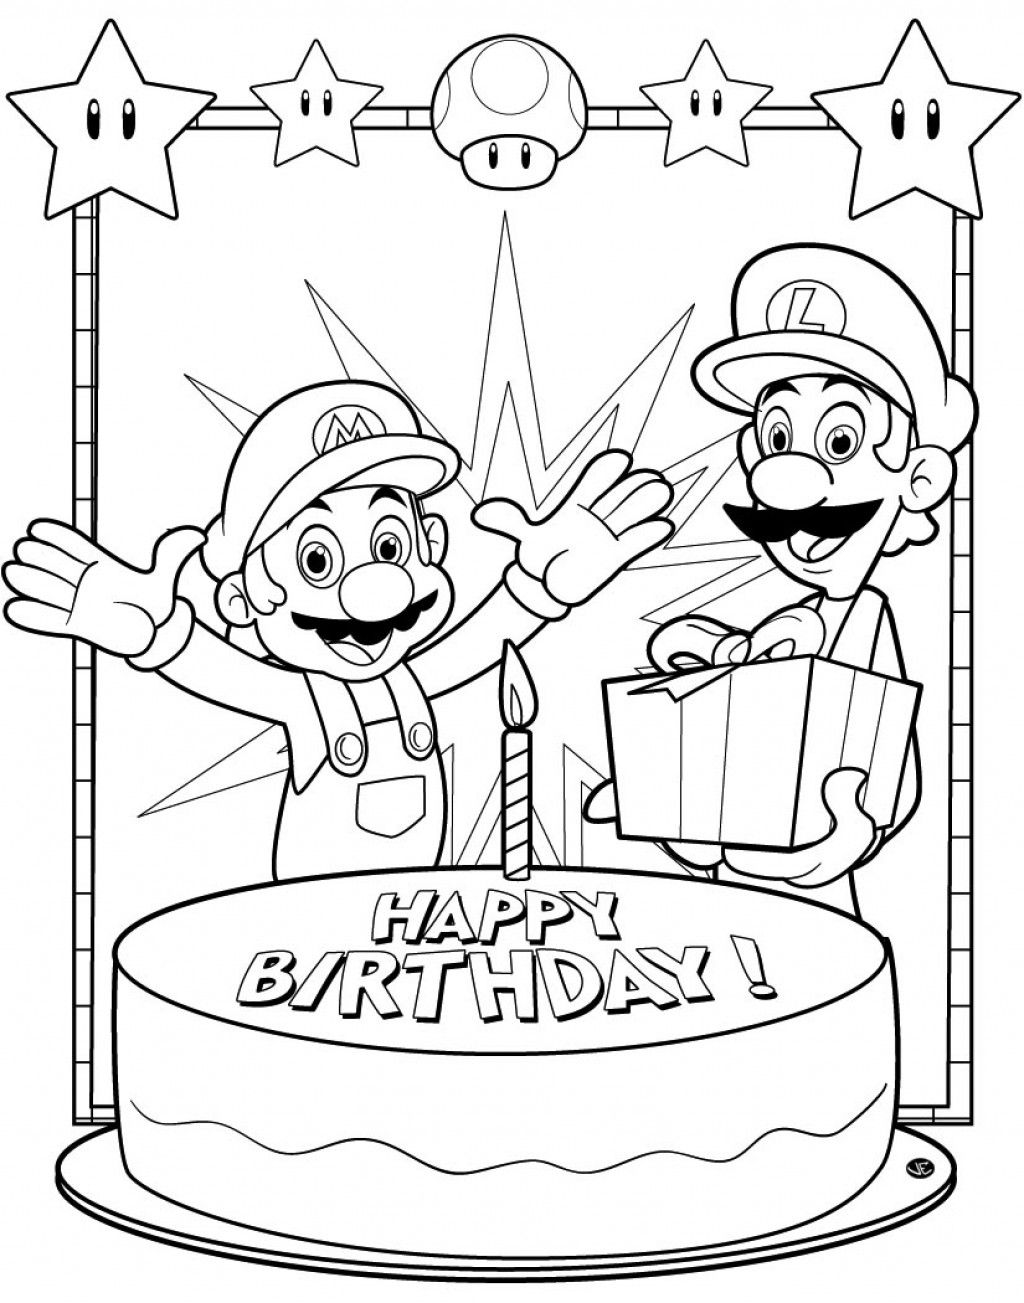 Mario And Luigi Printable Coloring Pages In 2020 Birthday Coloring Pages Happy Birthday Coloring Pages Super Mario Coloring Pages